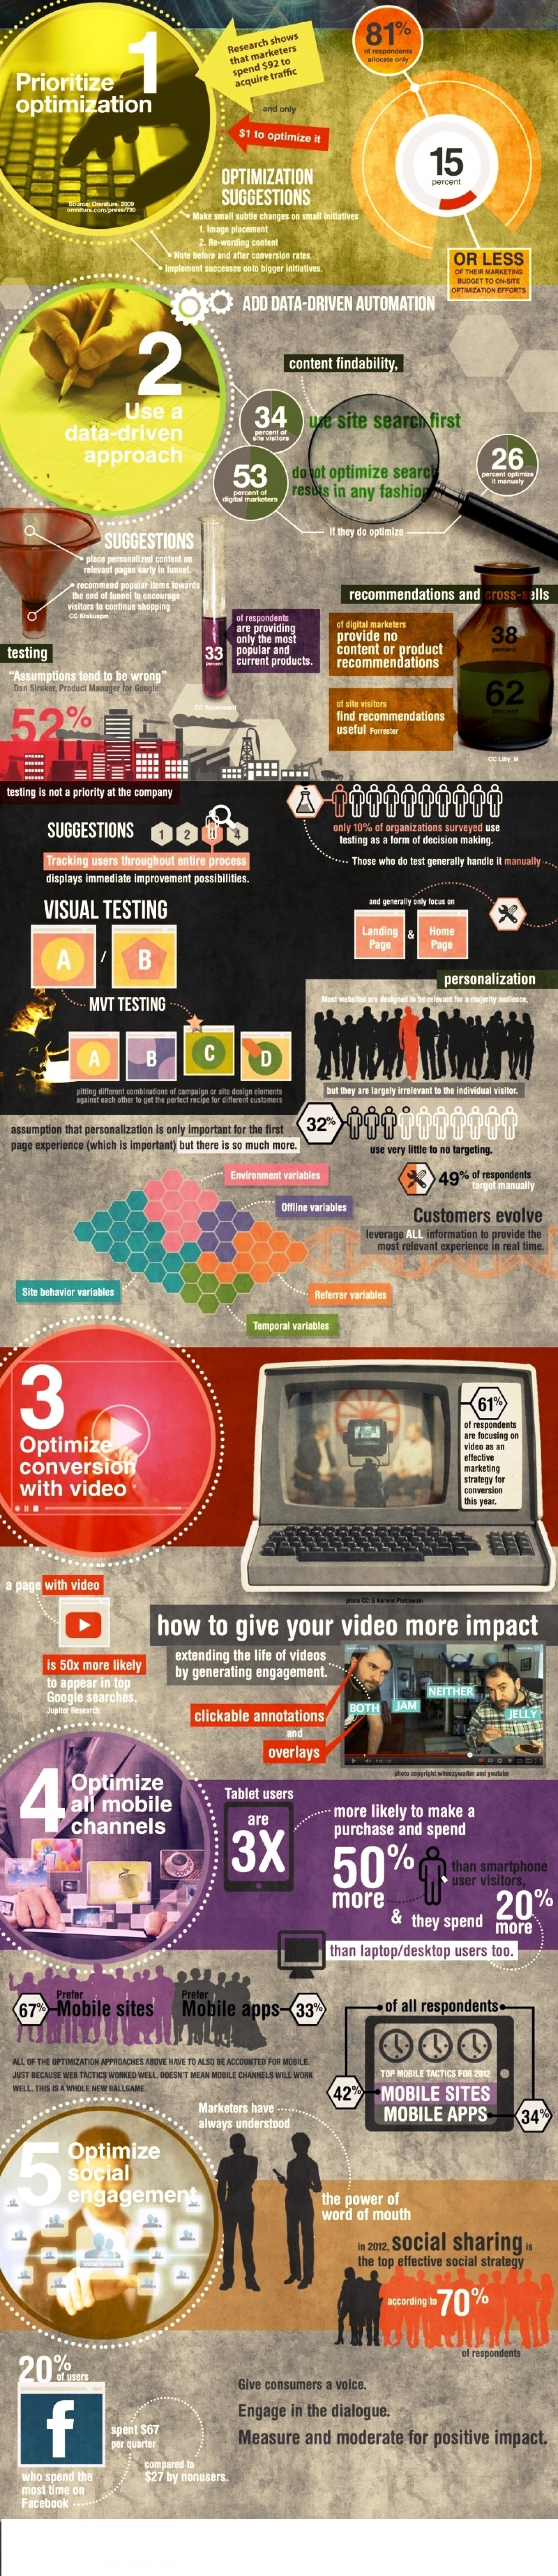 Do You Wants To Know About How to Maximize Your Digital Marketing Efforts By EBriks Infotech Infographic